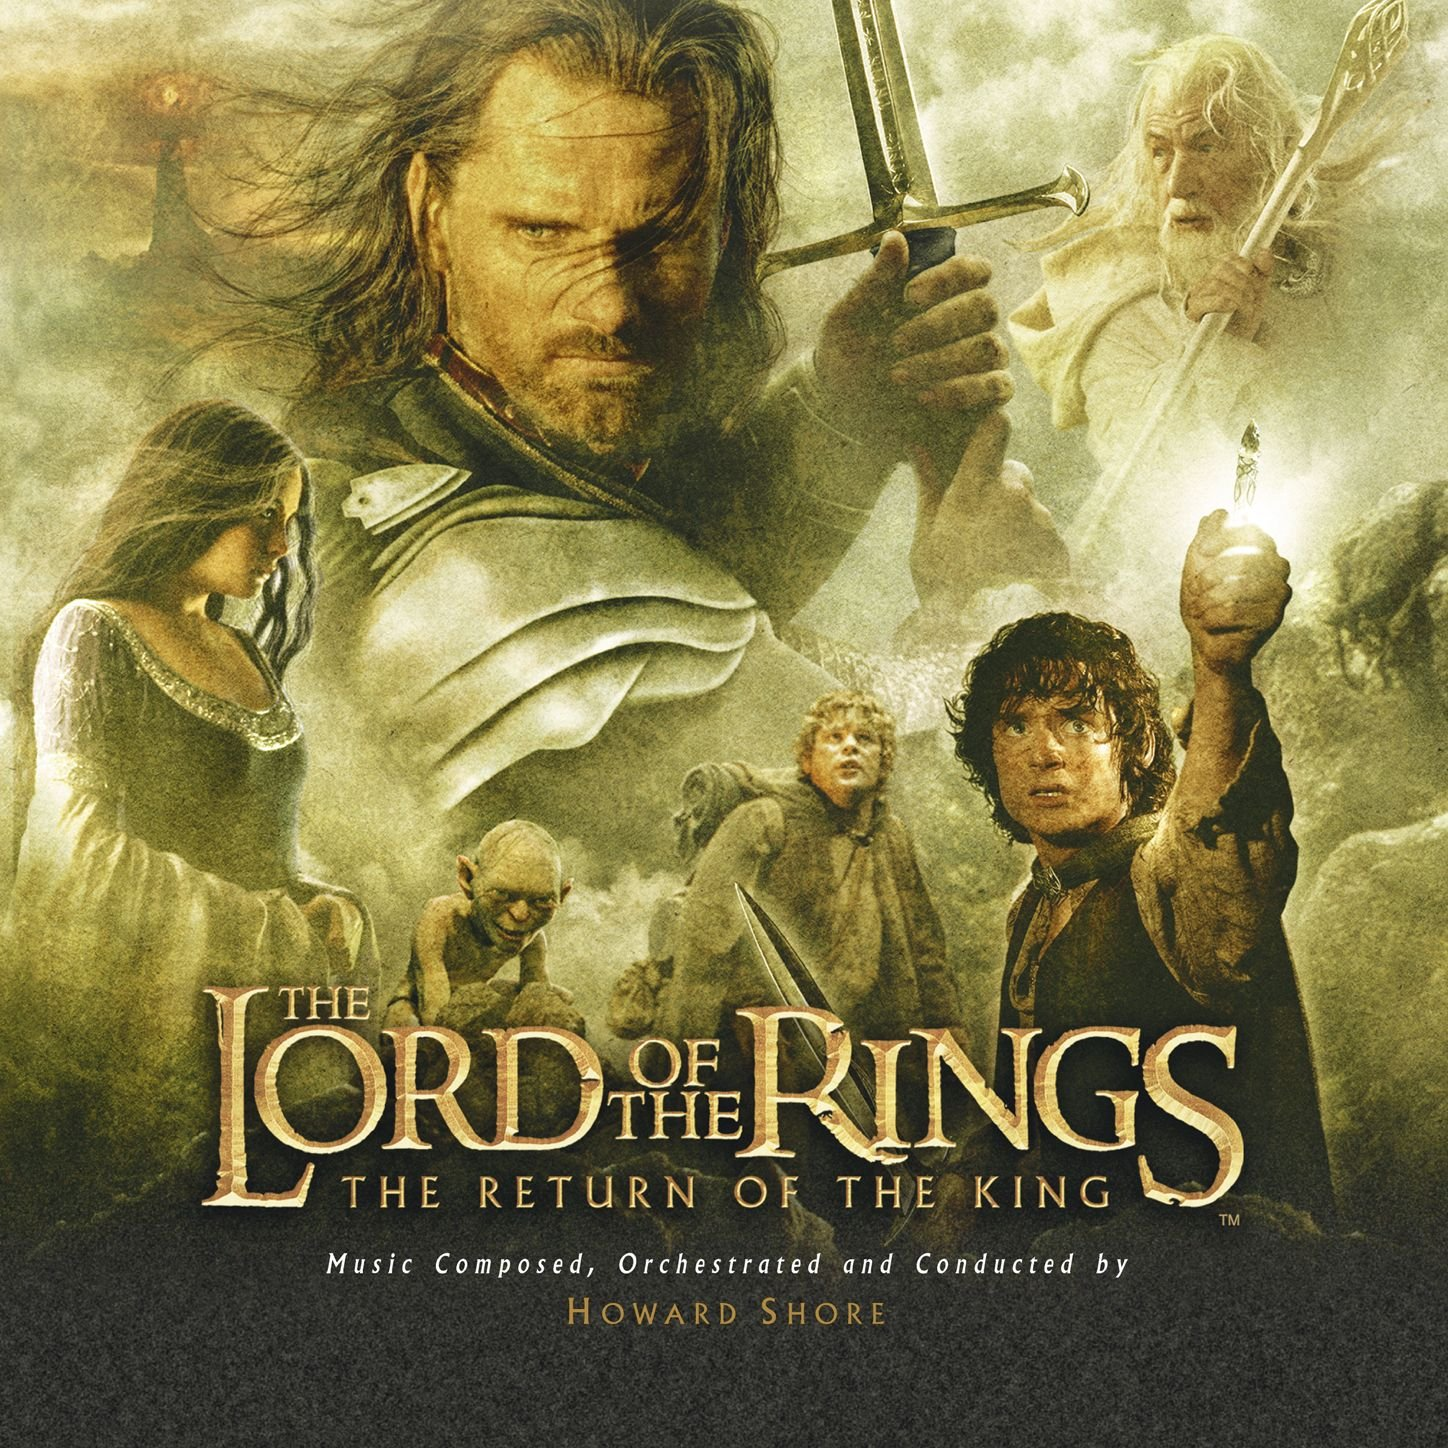 howard shore annie lennox the lord of the rings the return of